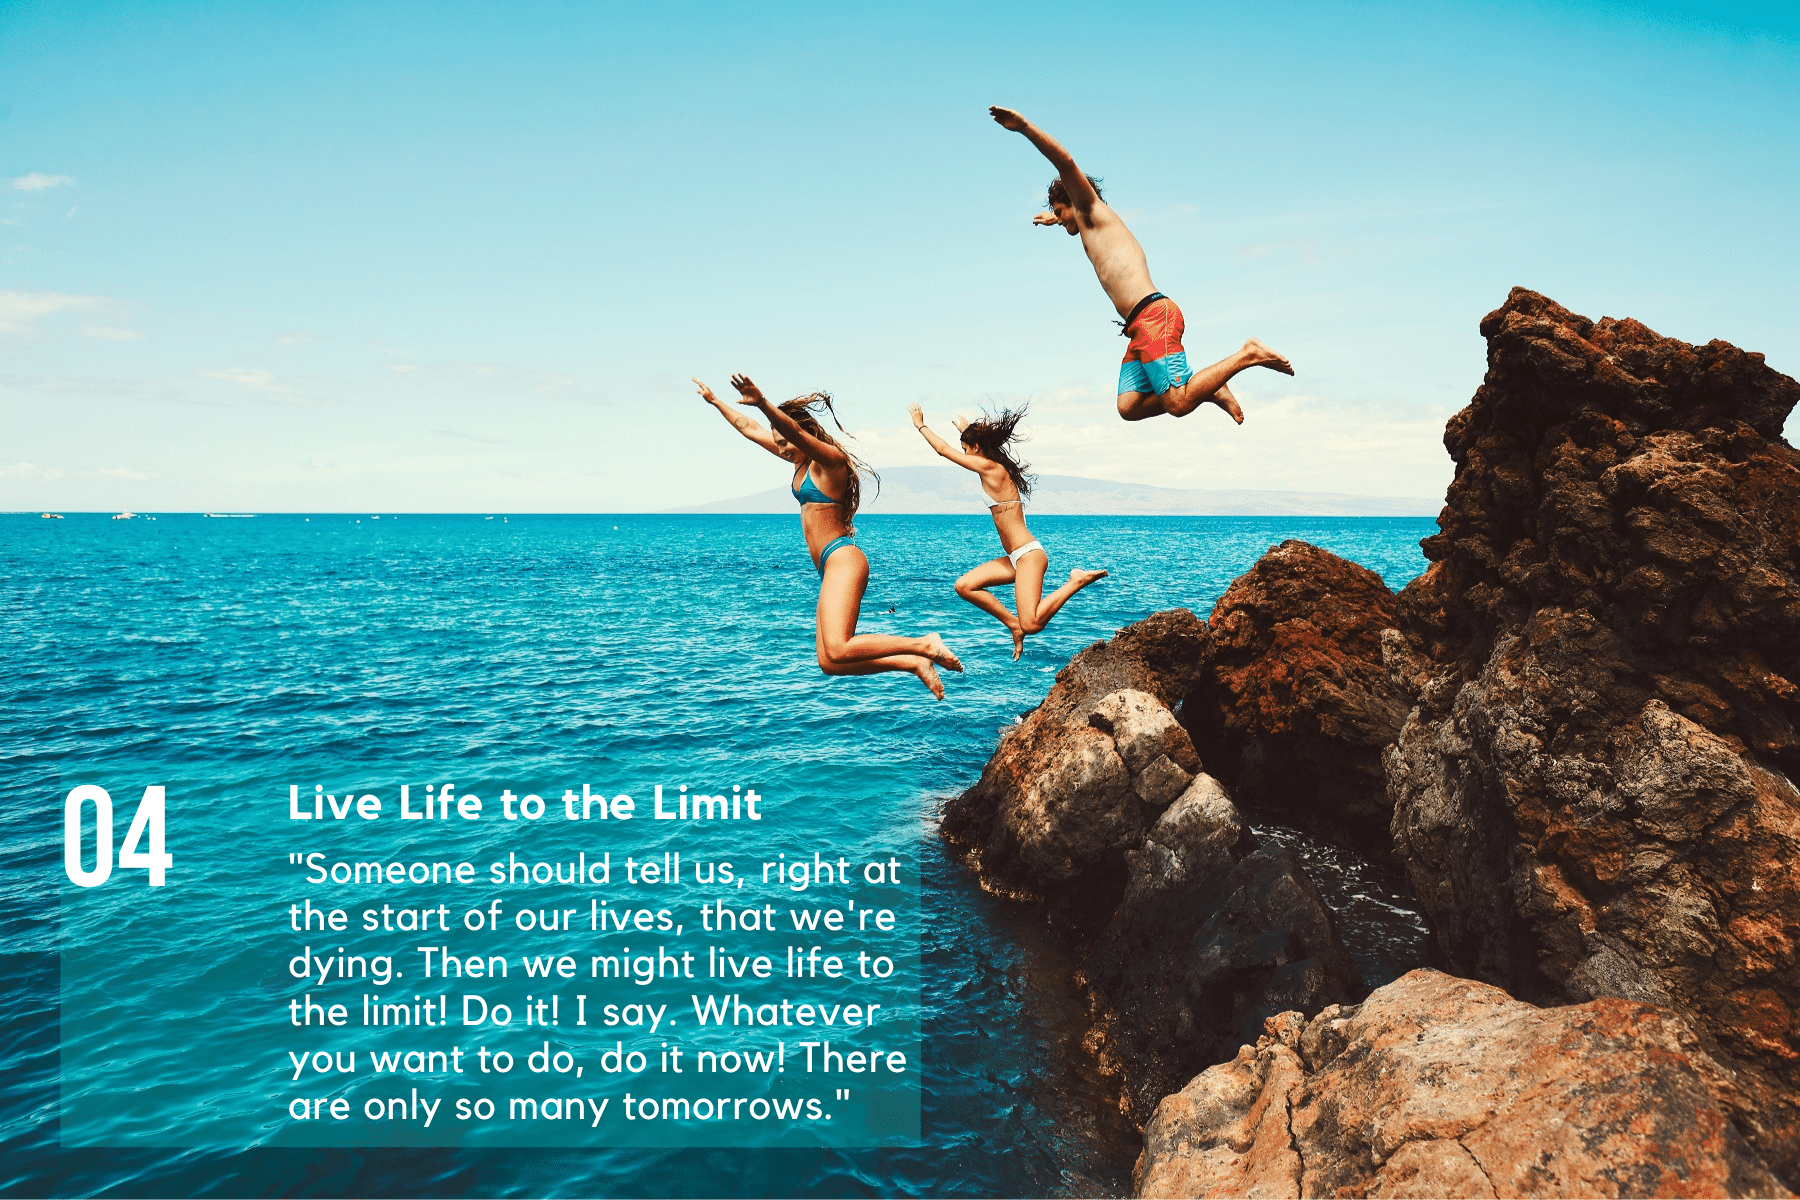 Live Life to the Limit!